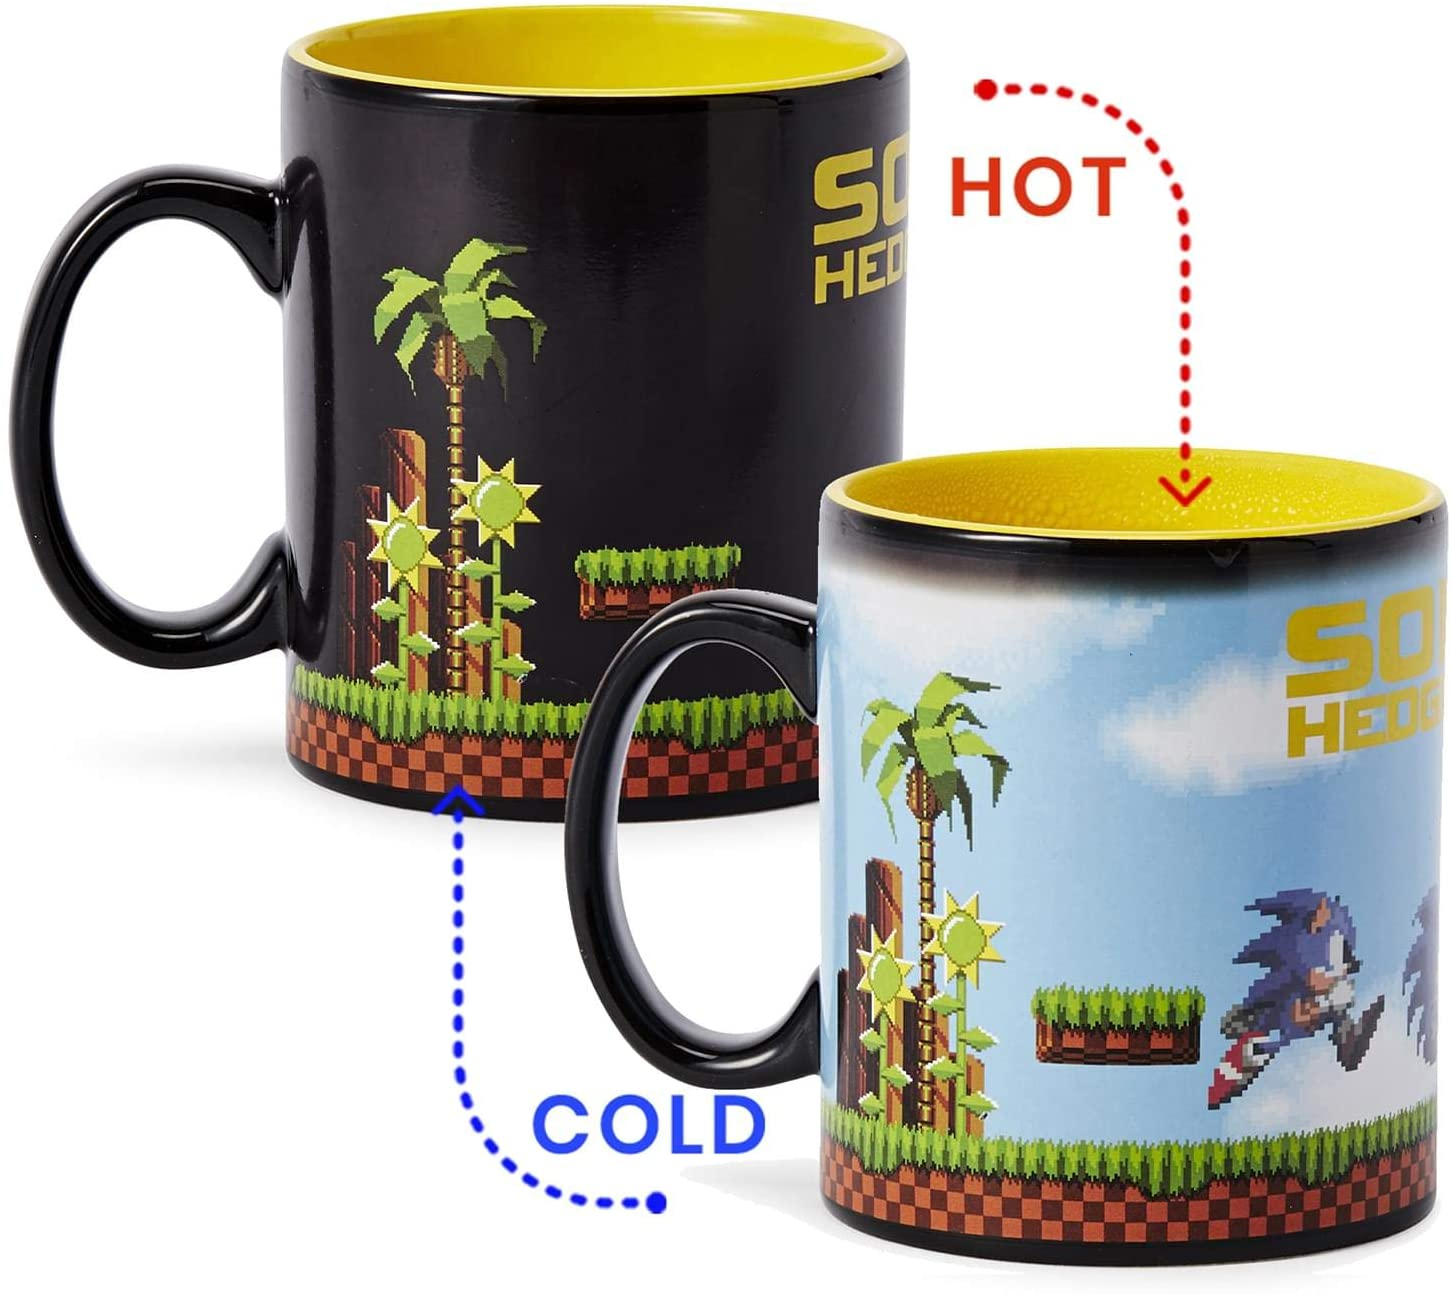 Sonic the Hedgehog Heat Changing 16-Bit Ceramic Coffee Mug | Official Sonic The Hedgehog Collectible Cup | Holds 16 Ounces